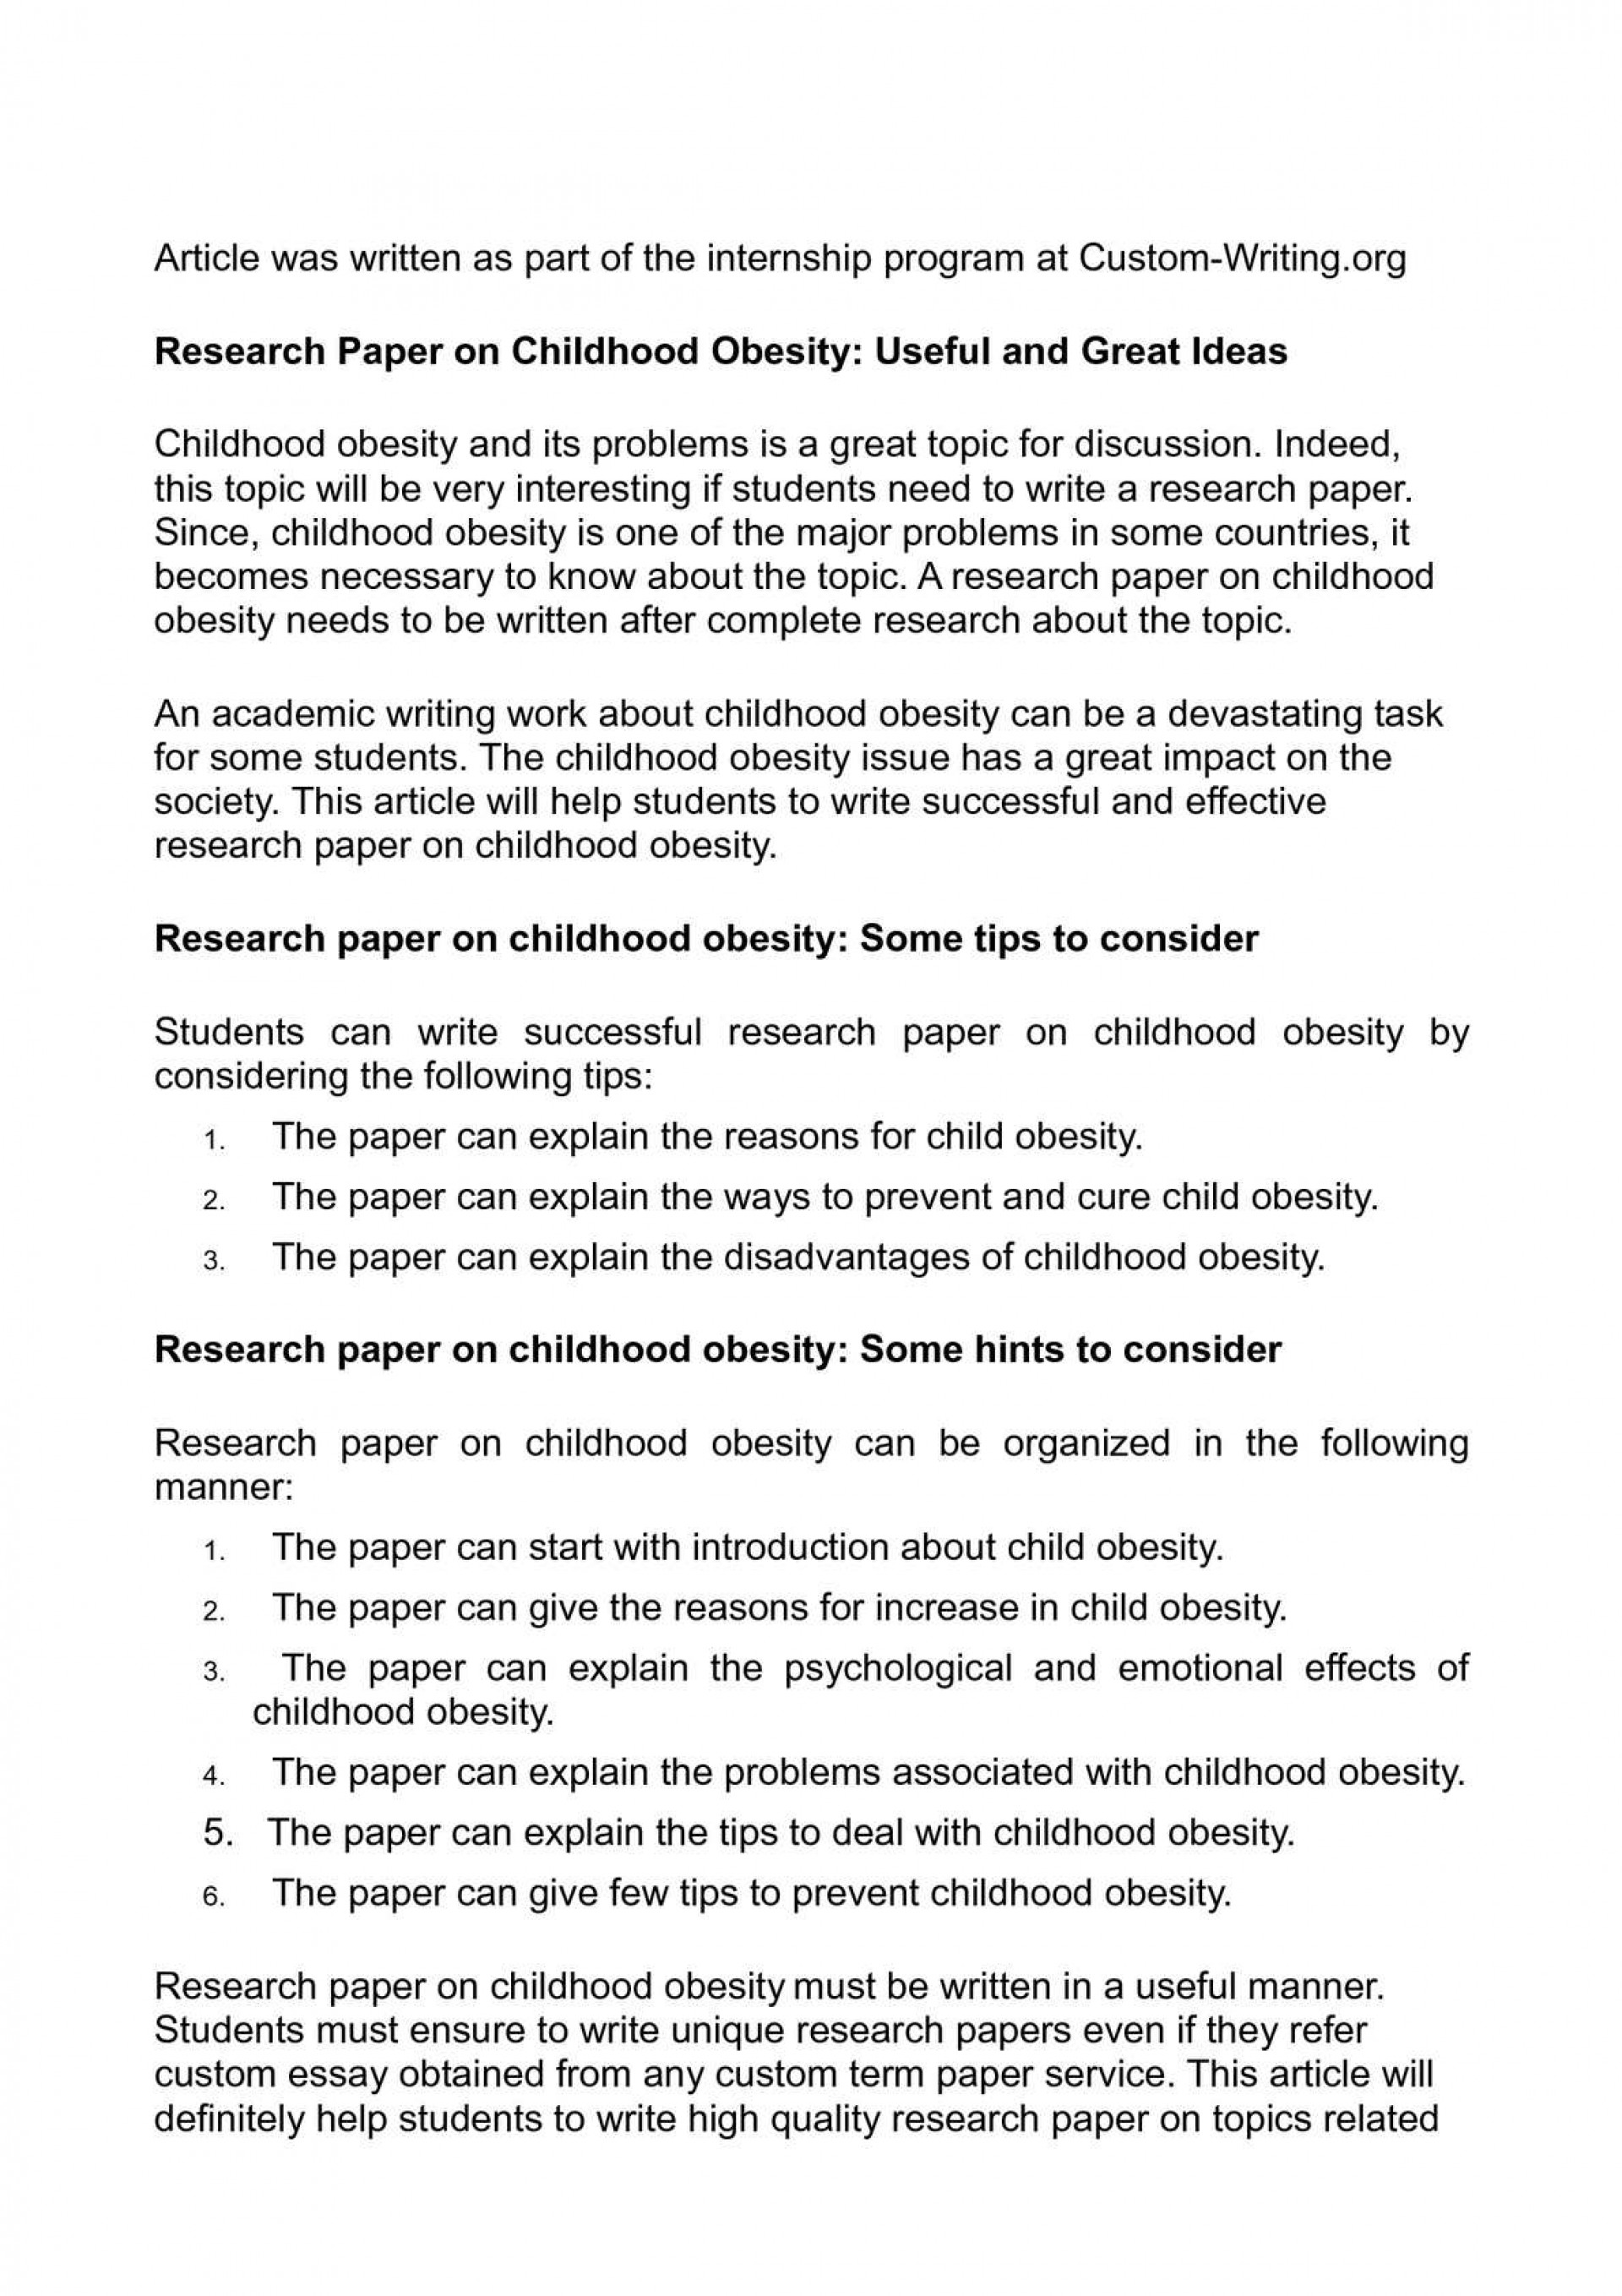 005 Obesity Research Paper Topics Fascinating Childhood 1920